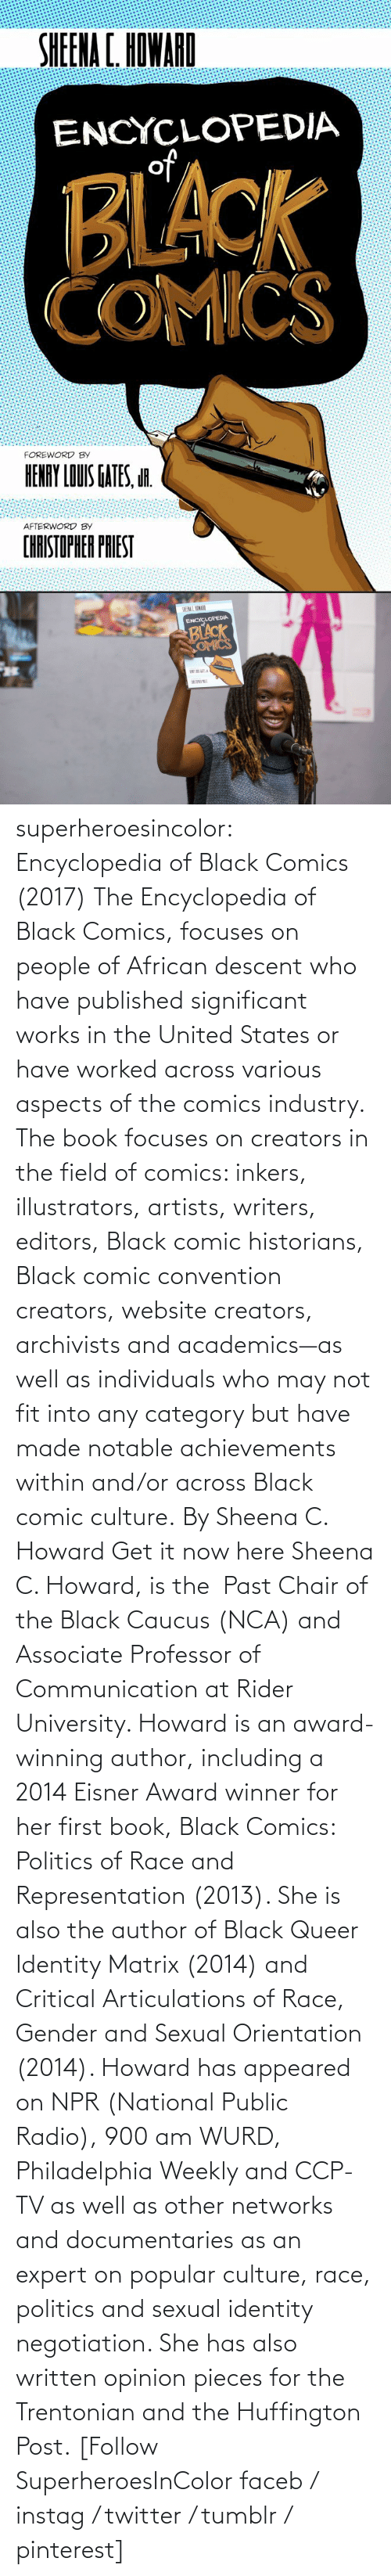 now: superheroesincolor: Encyclopedia of Black Comics (2017) The Encyclopedia of Black Comics, focuses on people of African descent who have published significant works in the United States or have worked across various aspects of the comics industry.  The book focuses on creators in the field of comics: inkers, illustrators, artists, writers, editors, Black comic historians, Black comic convention creators, website creators, archivists and academics—as well as individuals who may not fit into any category but have made notable achievements within and/or across Black comic culture. By Sheena C. Howard Get it now here  Sheena C. Howard, is the  Past Chair of the Black Caucus (NCA) and Associate Professor of Communication at Rider University. Howard is an award-winning author, including a 2014 Eisner Award winner for her first book, Black Comics: Politics of Race and Representation (2013). She is also the author of Black Queer Identity Matrix (2014) and Critical Articulations of Race, Gender and Sexual Orientation (2014). Howard has appeared on NPR (National Public Radio), 900 am WURD, Philadelphia Weekly and CCP-TV as well as other networks and documentaries as an expert on popular culture, race, politics and sexual identity negotiation. She has also written opinion pieces for the Trentonian and the Huffington Post.   [Follow SuperheroesInColor faceb / instag / twitter / tumblr / pinterest]